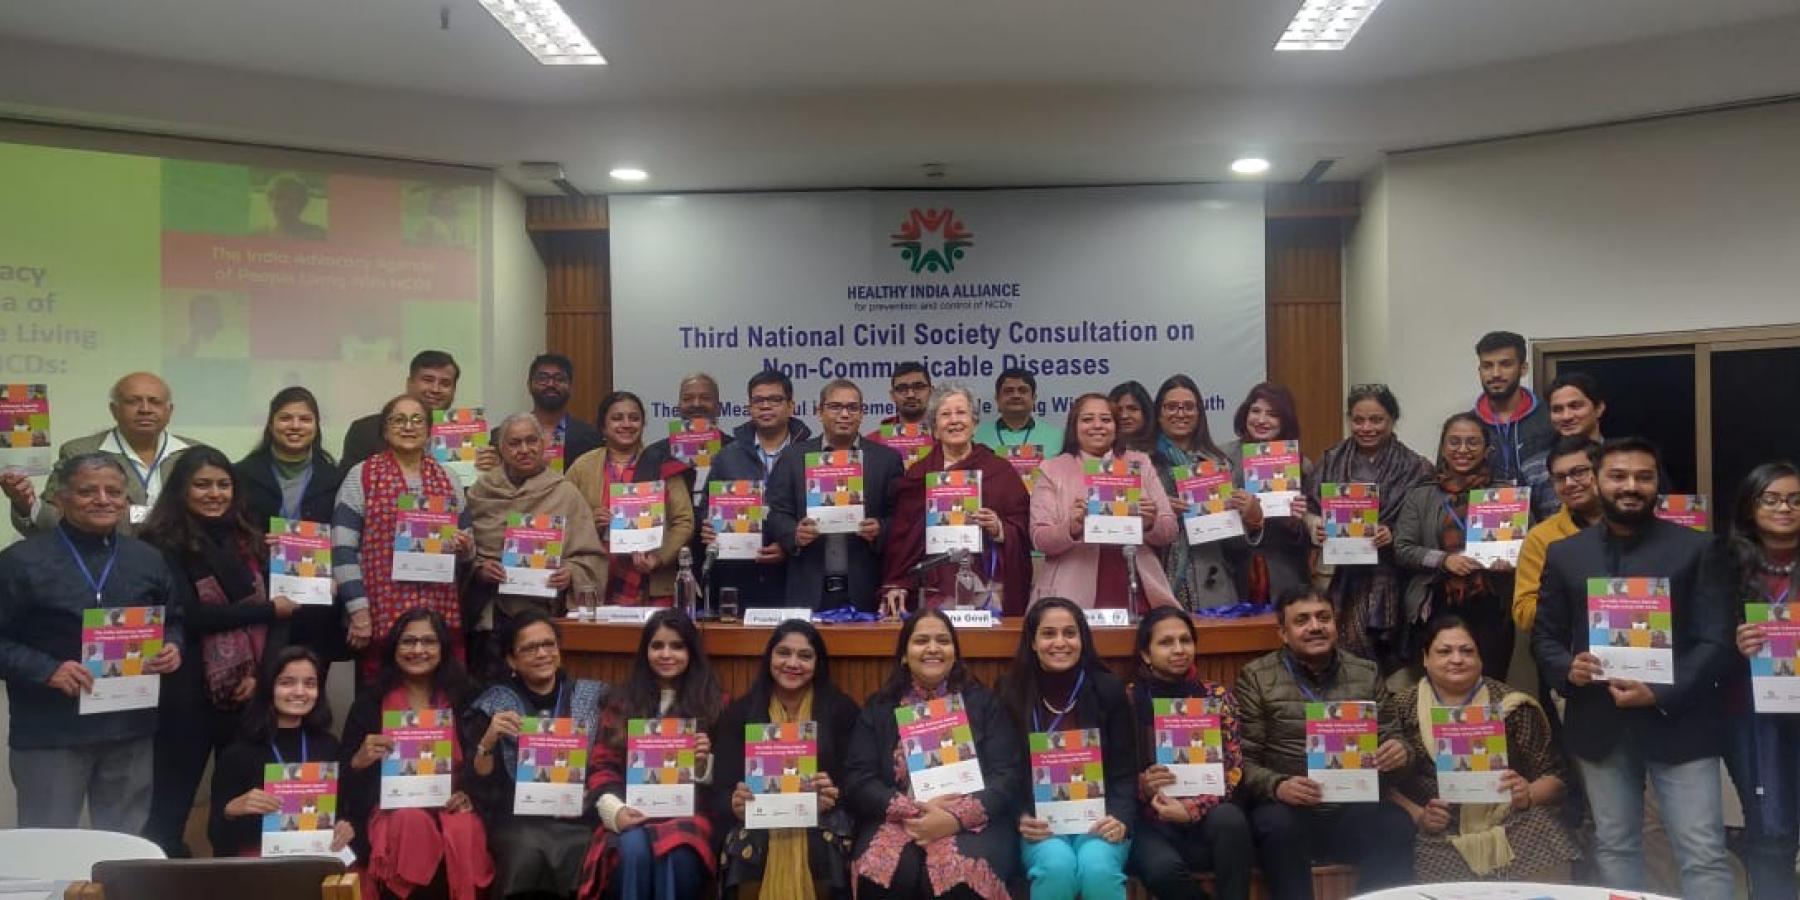 Launch of theIndia Advocacy Agenda of People Living with NCDs at theThird National Civil Society Consultation convened by the Healthy India Alliance on 27 December 2019 in New Delhi, India